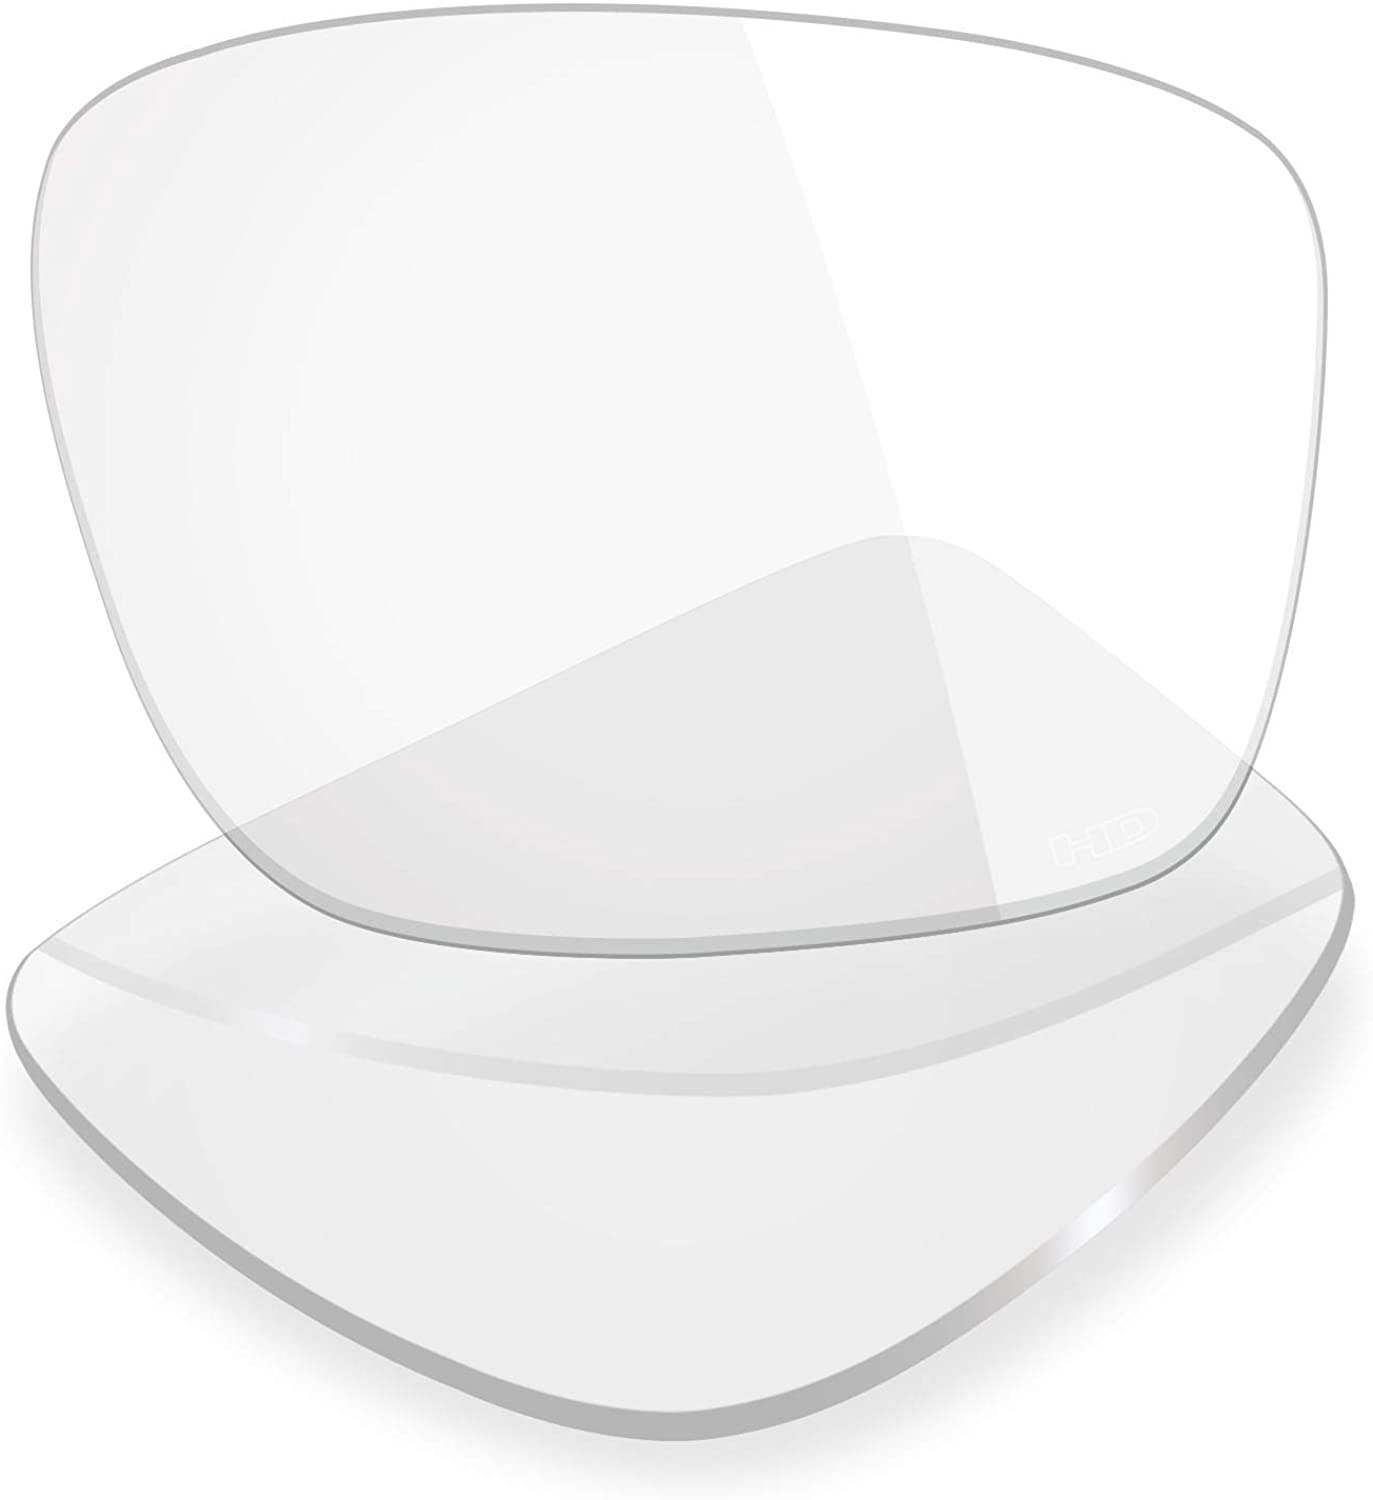 Mryok Replacement Lenses for Oakley Mainlink - Options